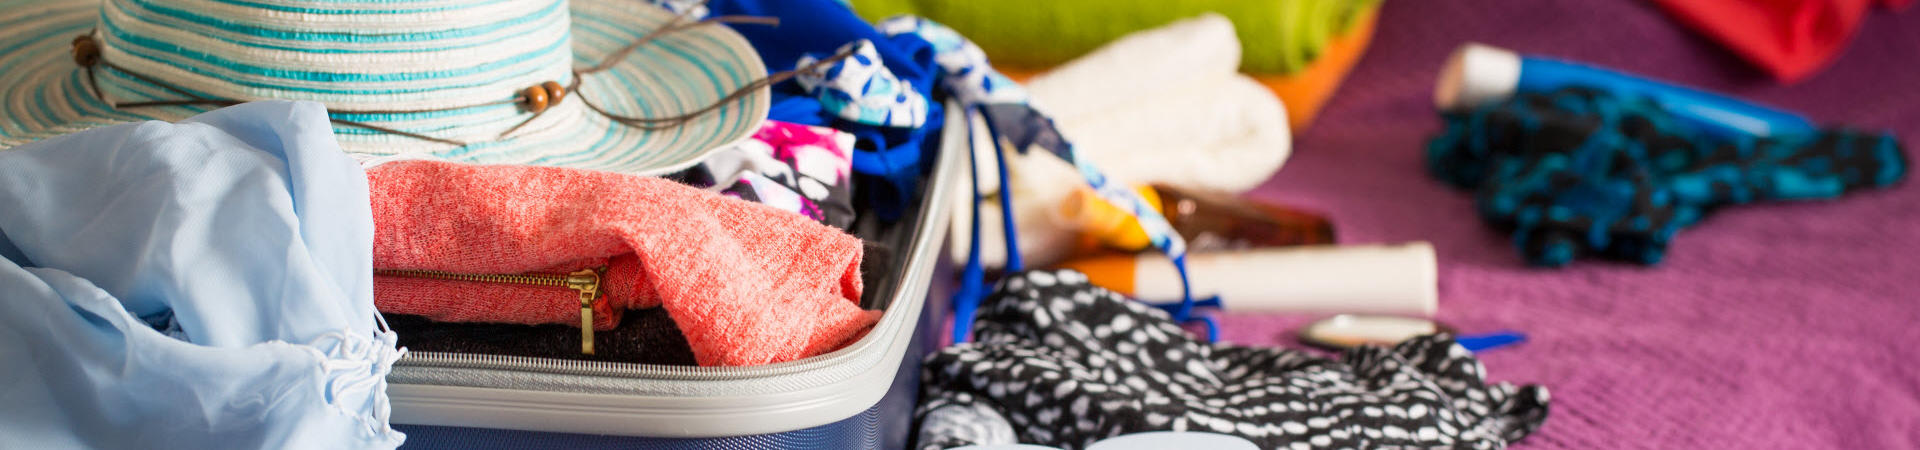 What to Pack Checklist